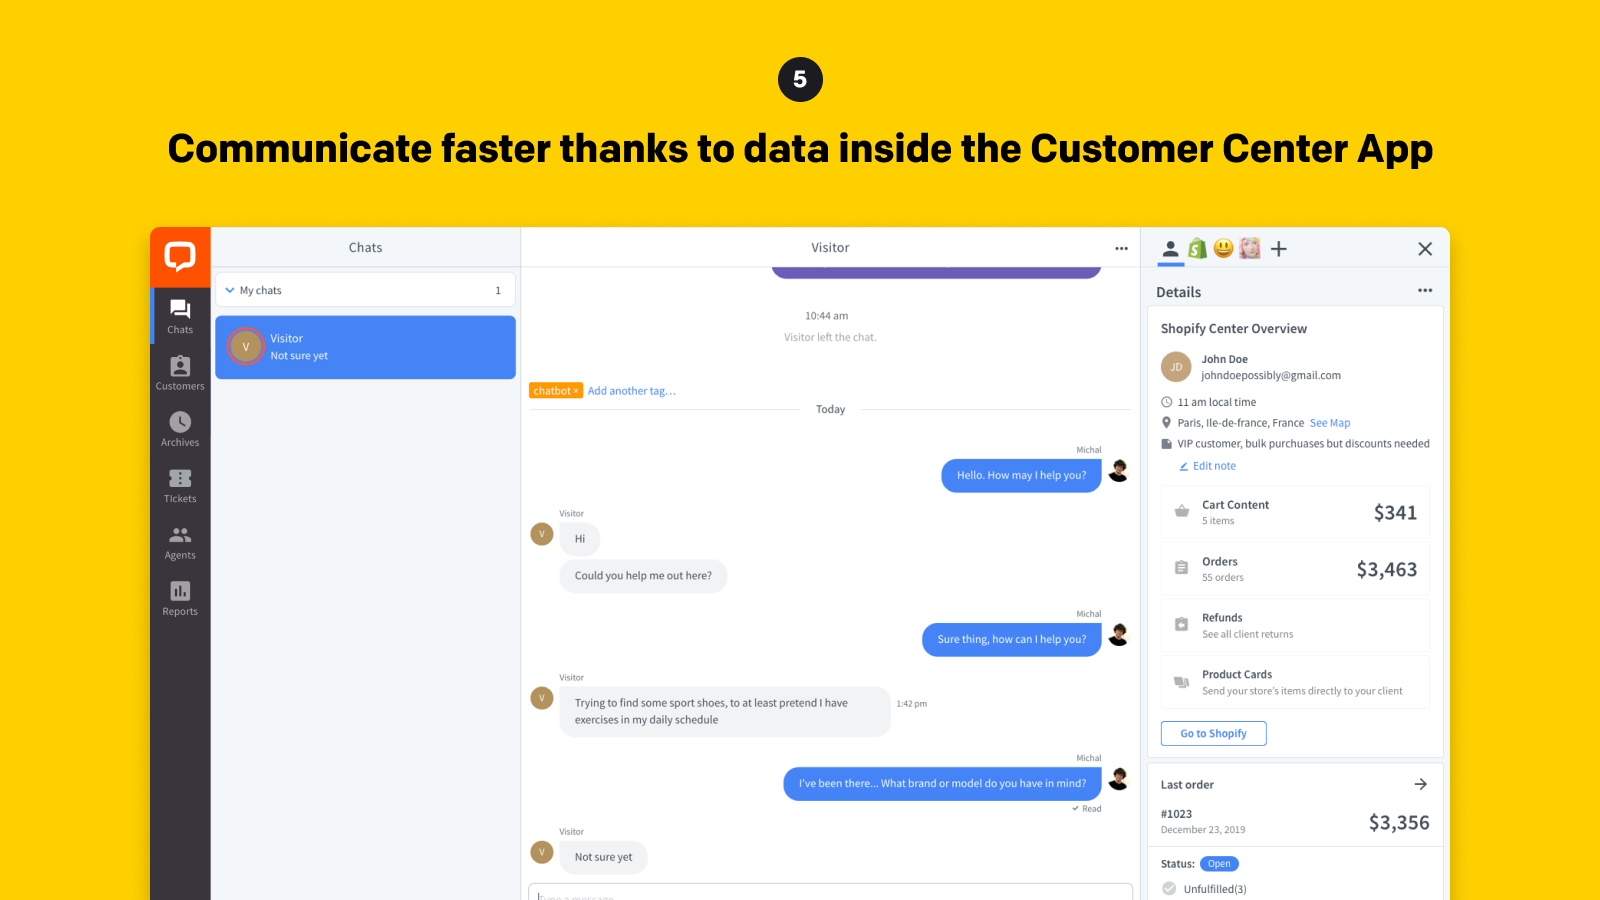 Communicate faster thanks to data inside the Customer Insight